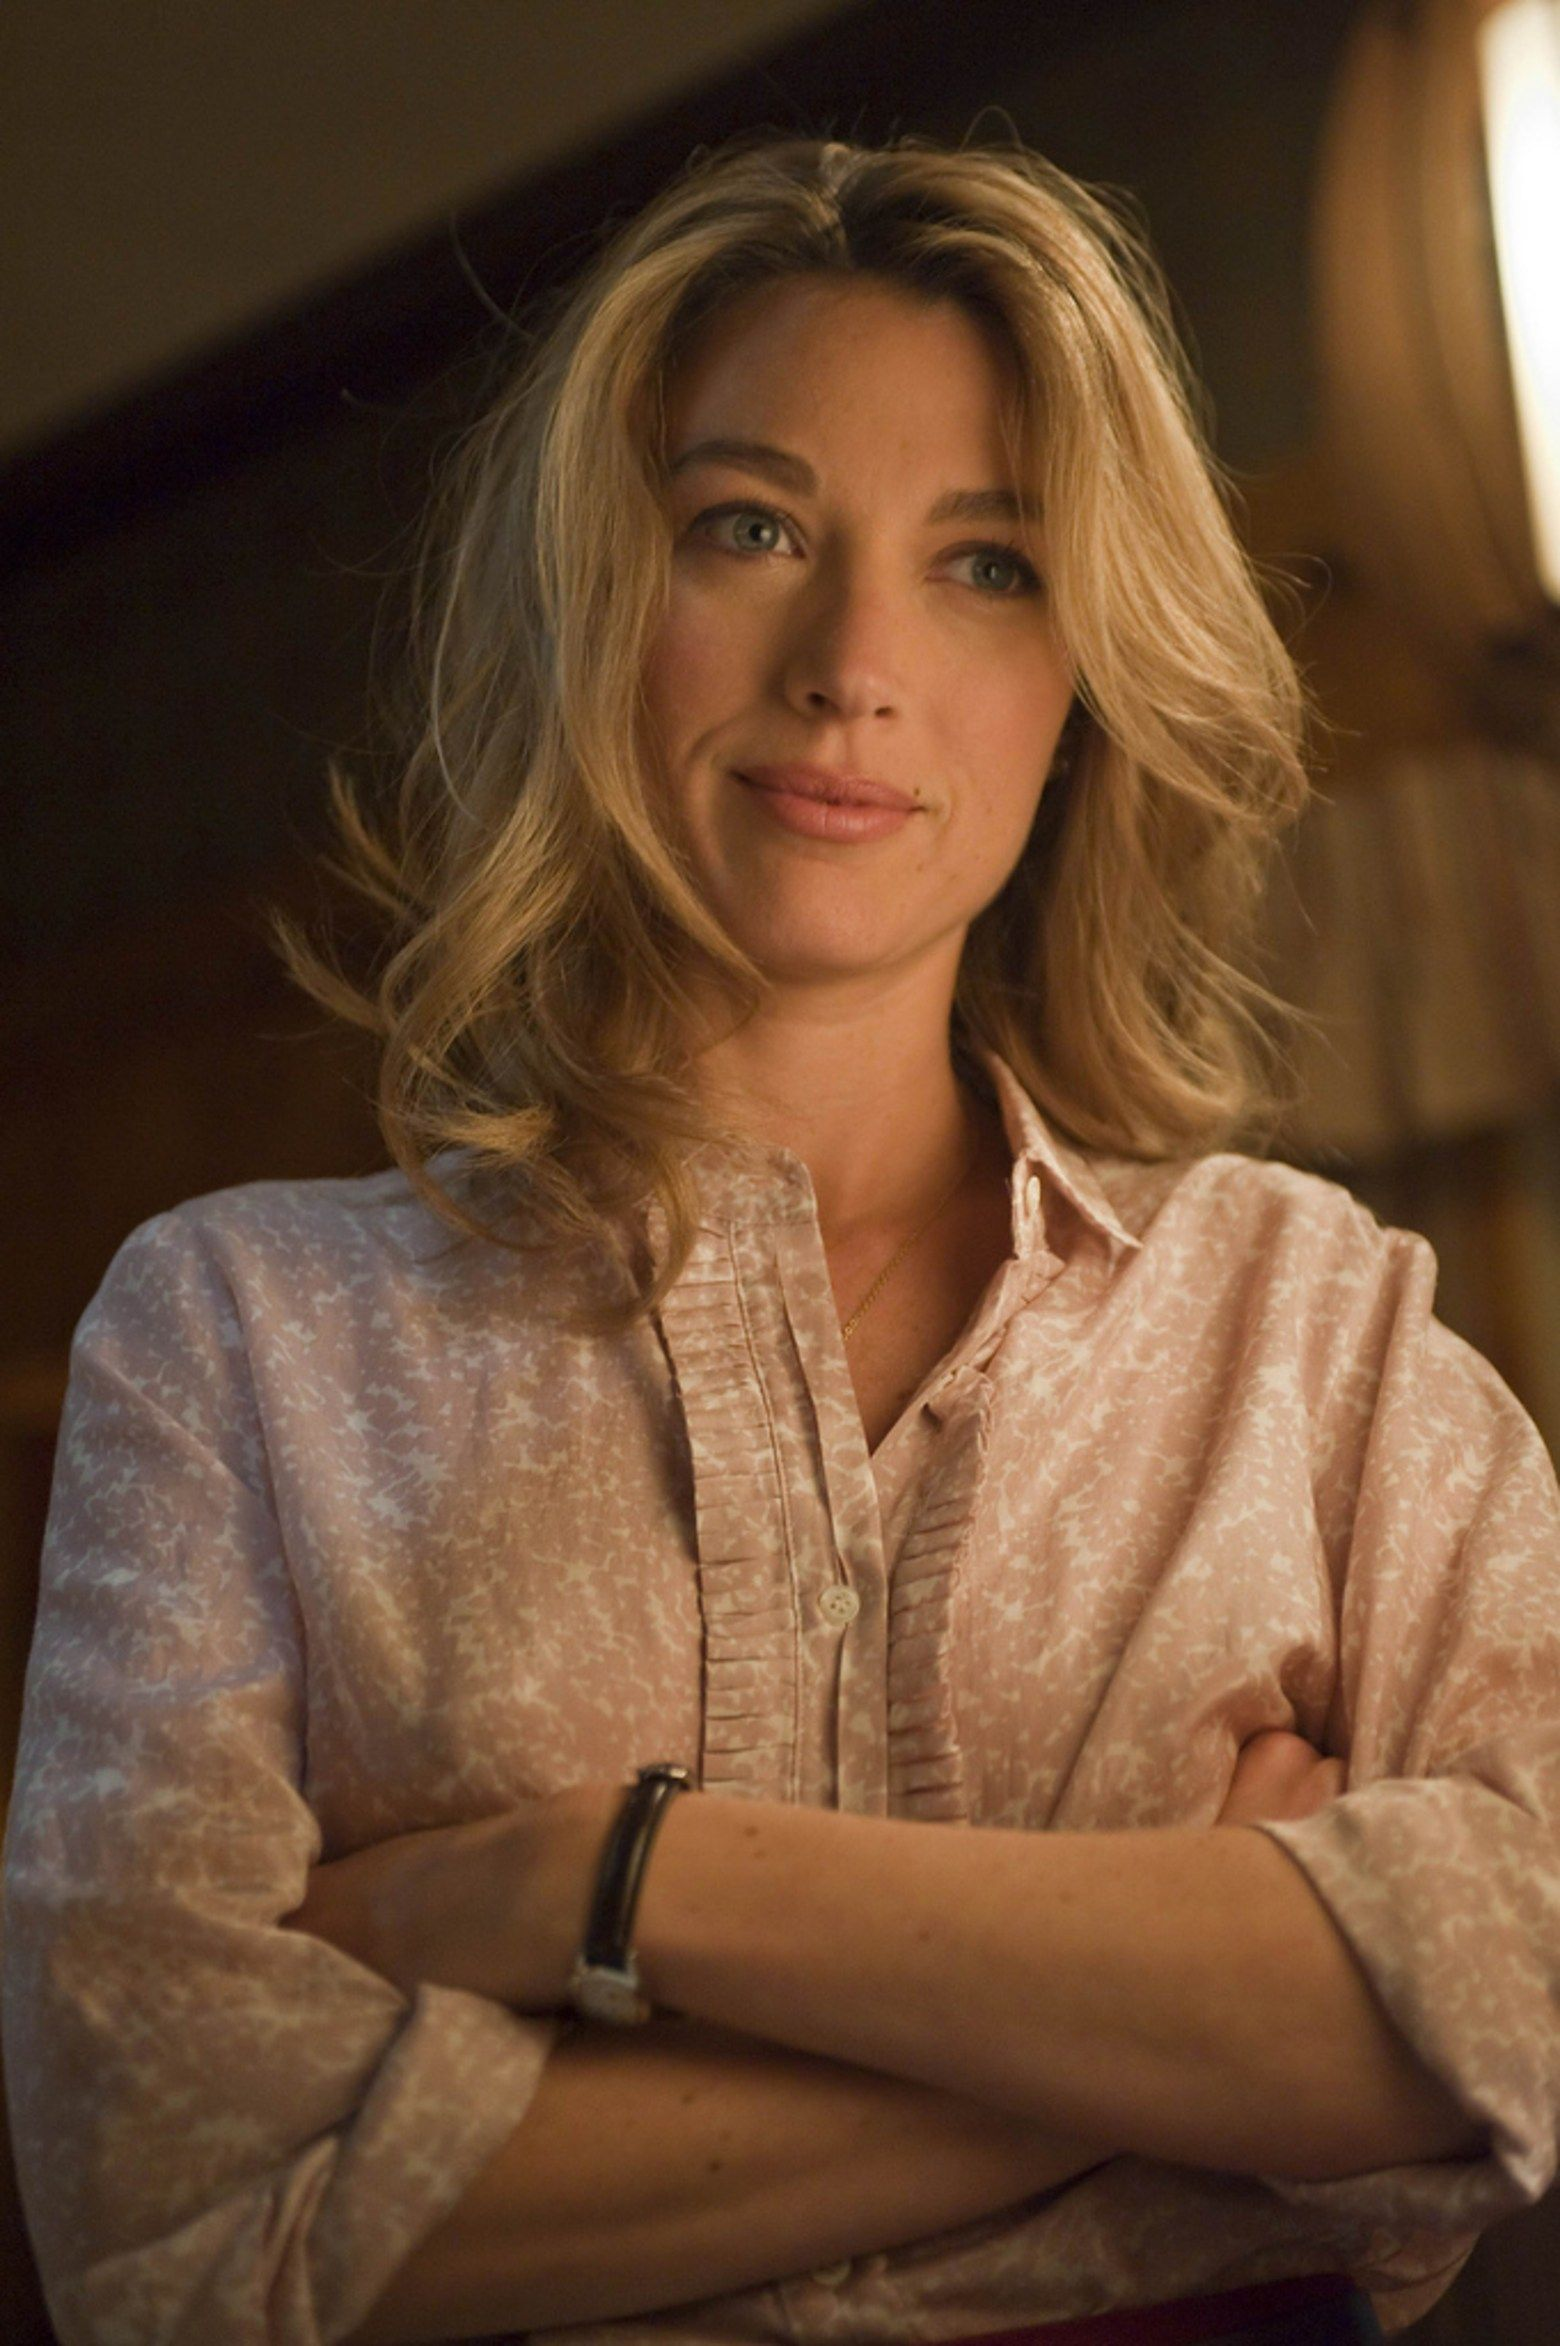 fca91e88639 Natalie Zea as Winona in Justified